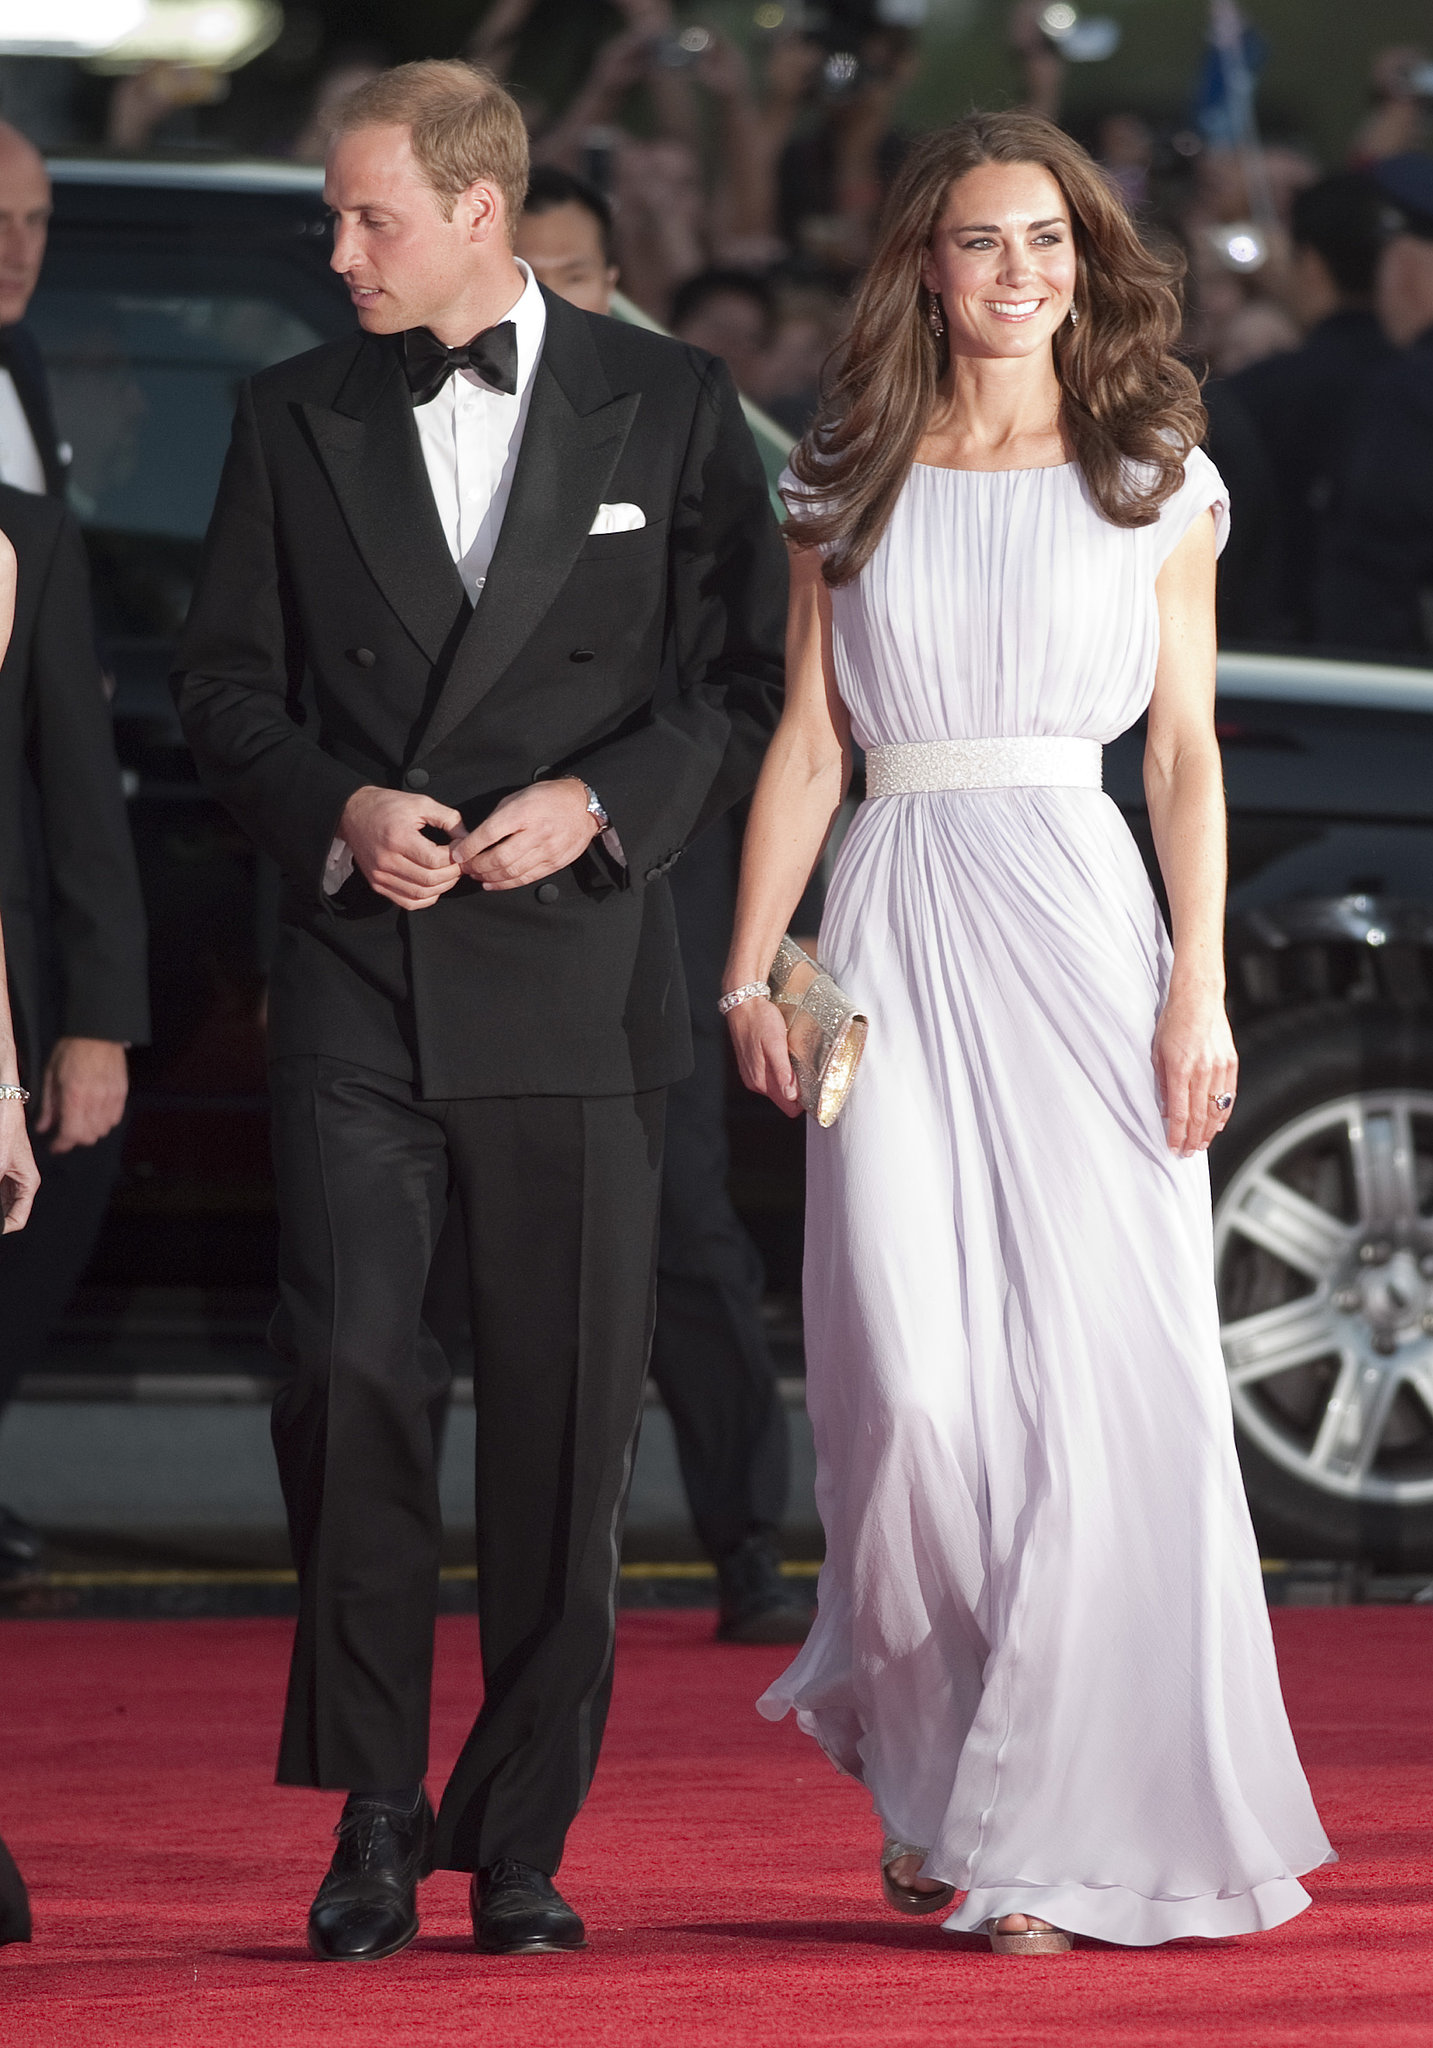 The Royal Couple at the BAFTA Brits to Watch Awards